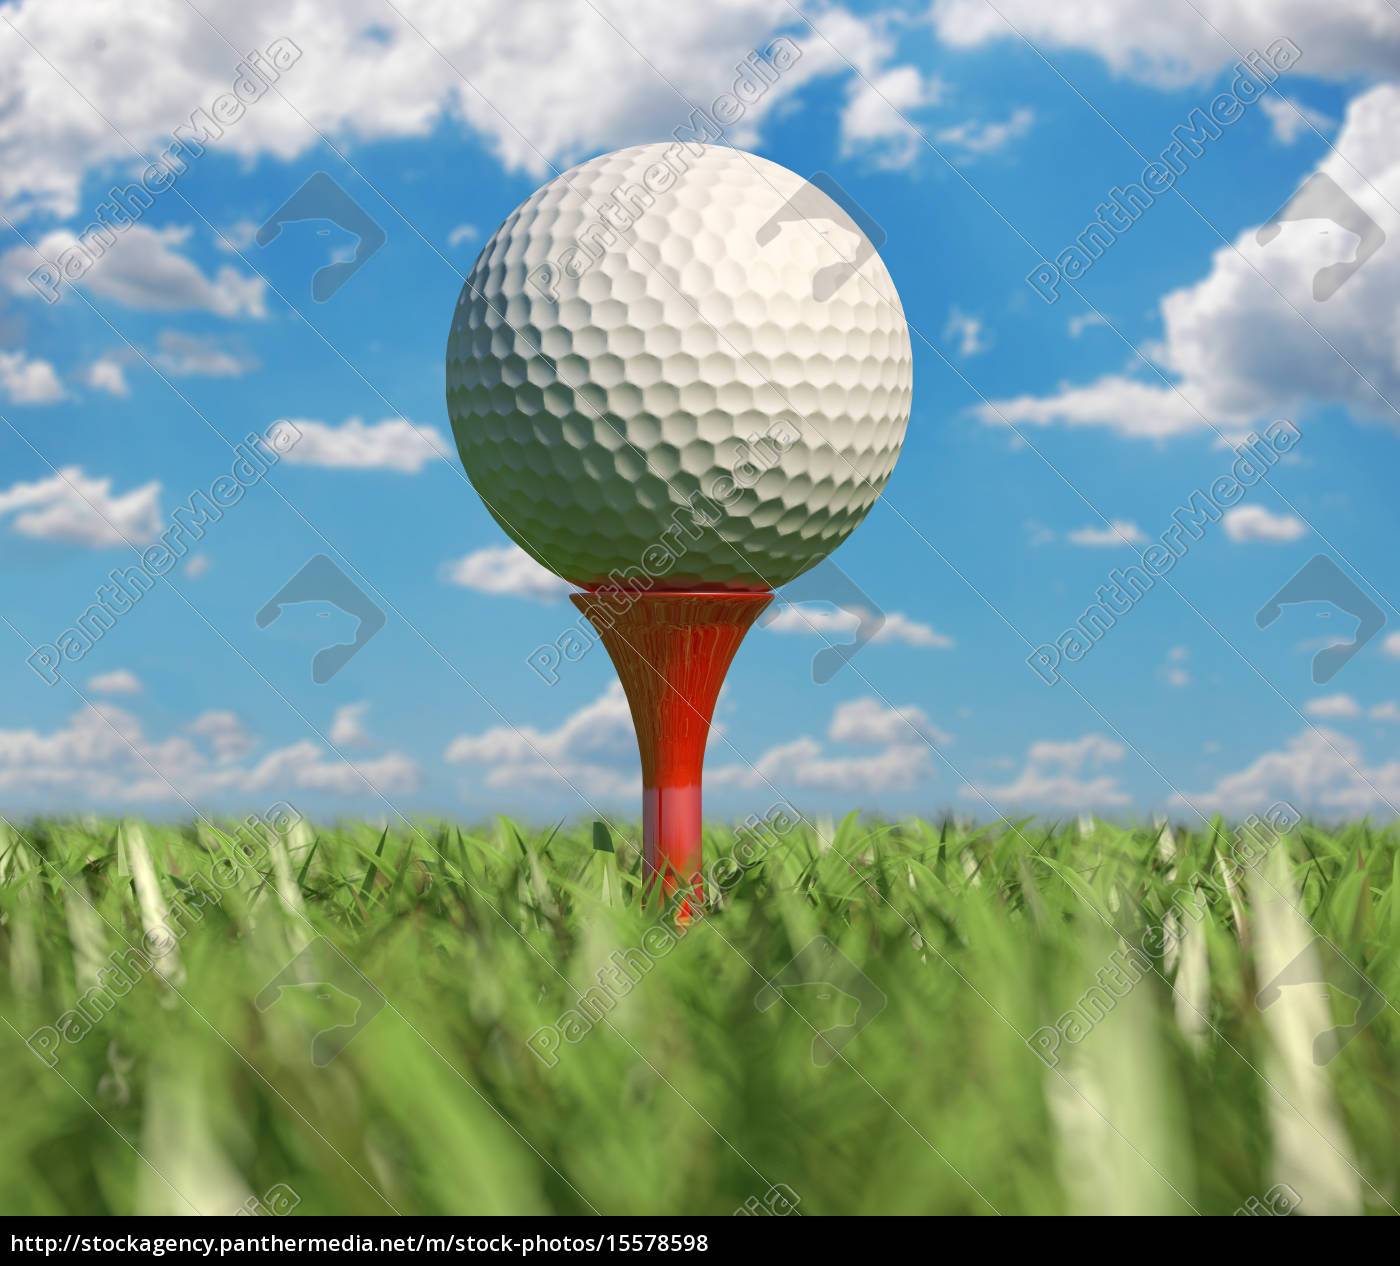 Golf Ball Isolated On Tee In The Grass Royalty Free Image 15578598 Panthermedia Stock Agency